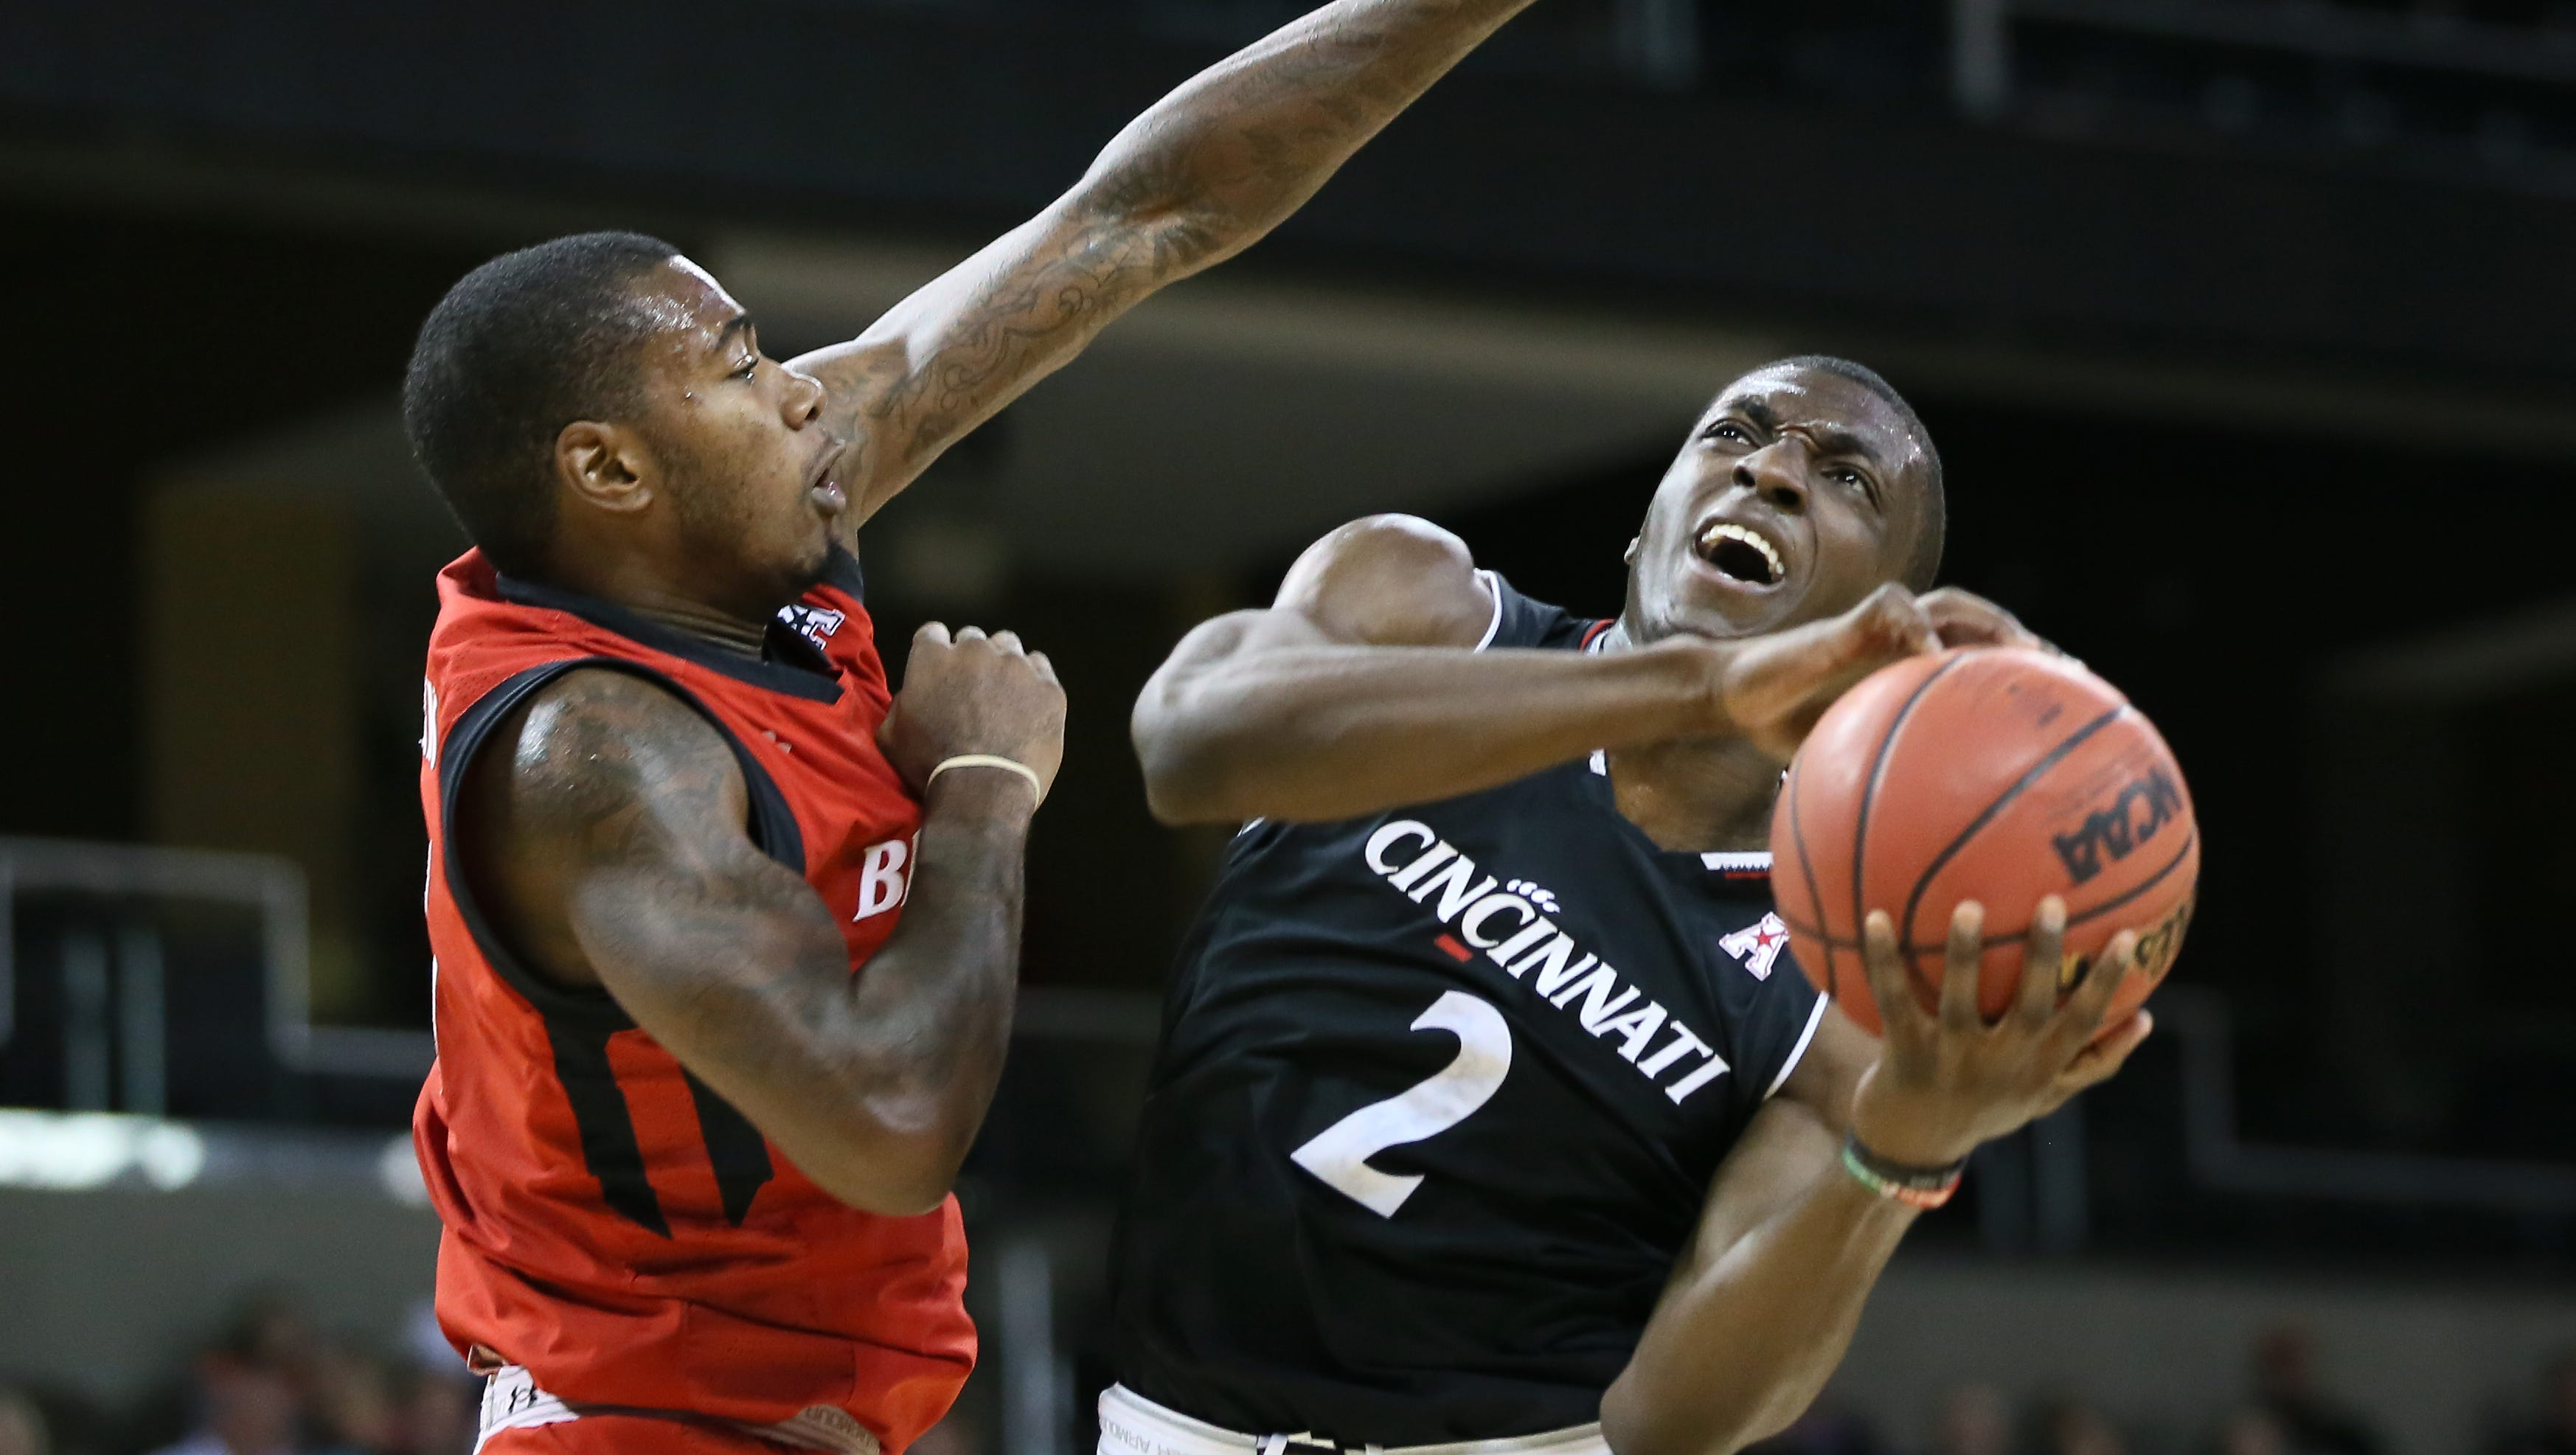 UC shows firepower in Red-Black basketball scrimmage